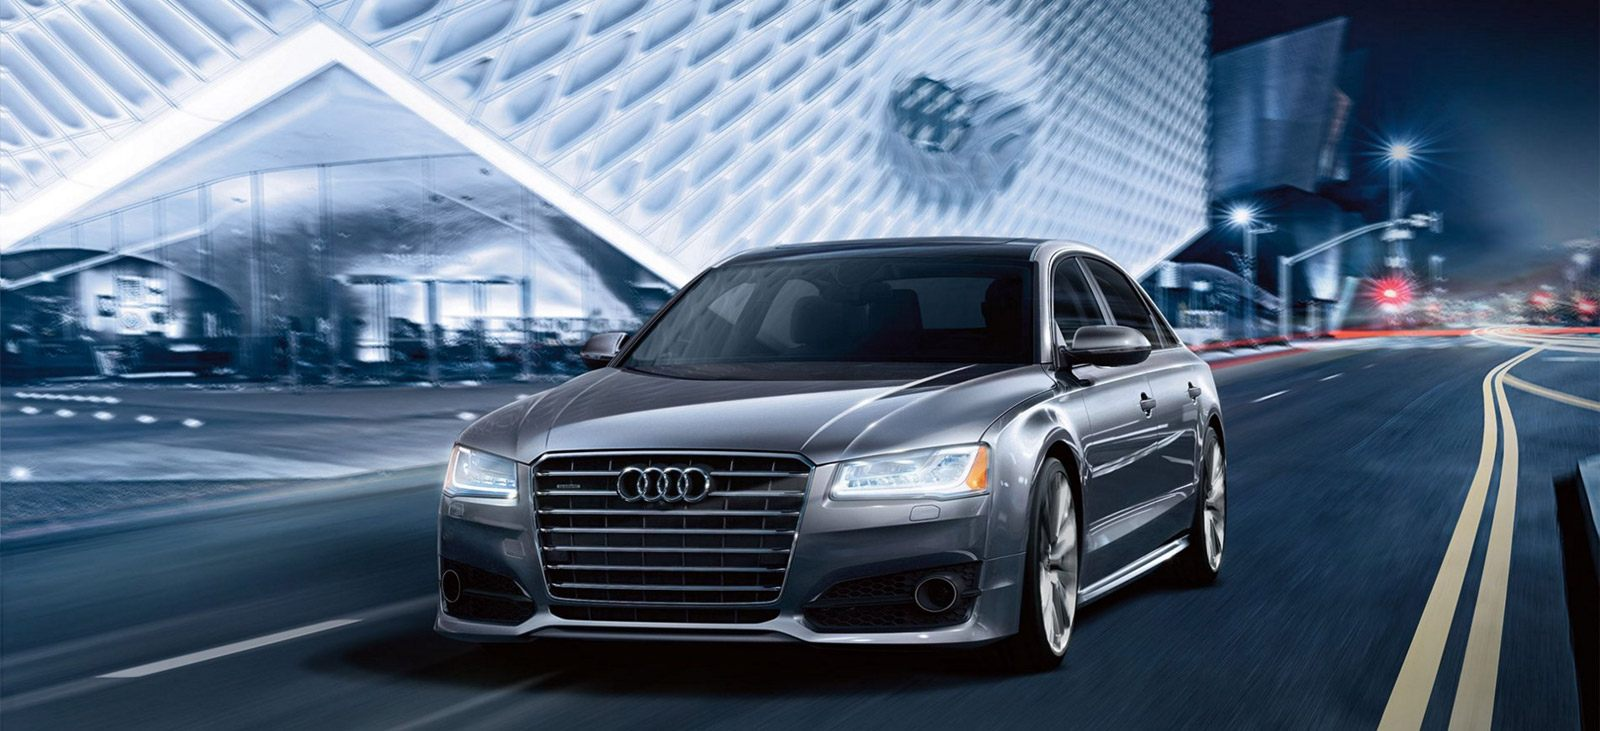 Audi S Flagship Sedan Gets A Few Updates For The 2018 Model Year With A8 L Equipped 3 0t Six Cylinder Engine Getting An Available Executive